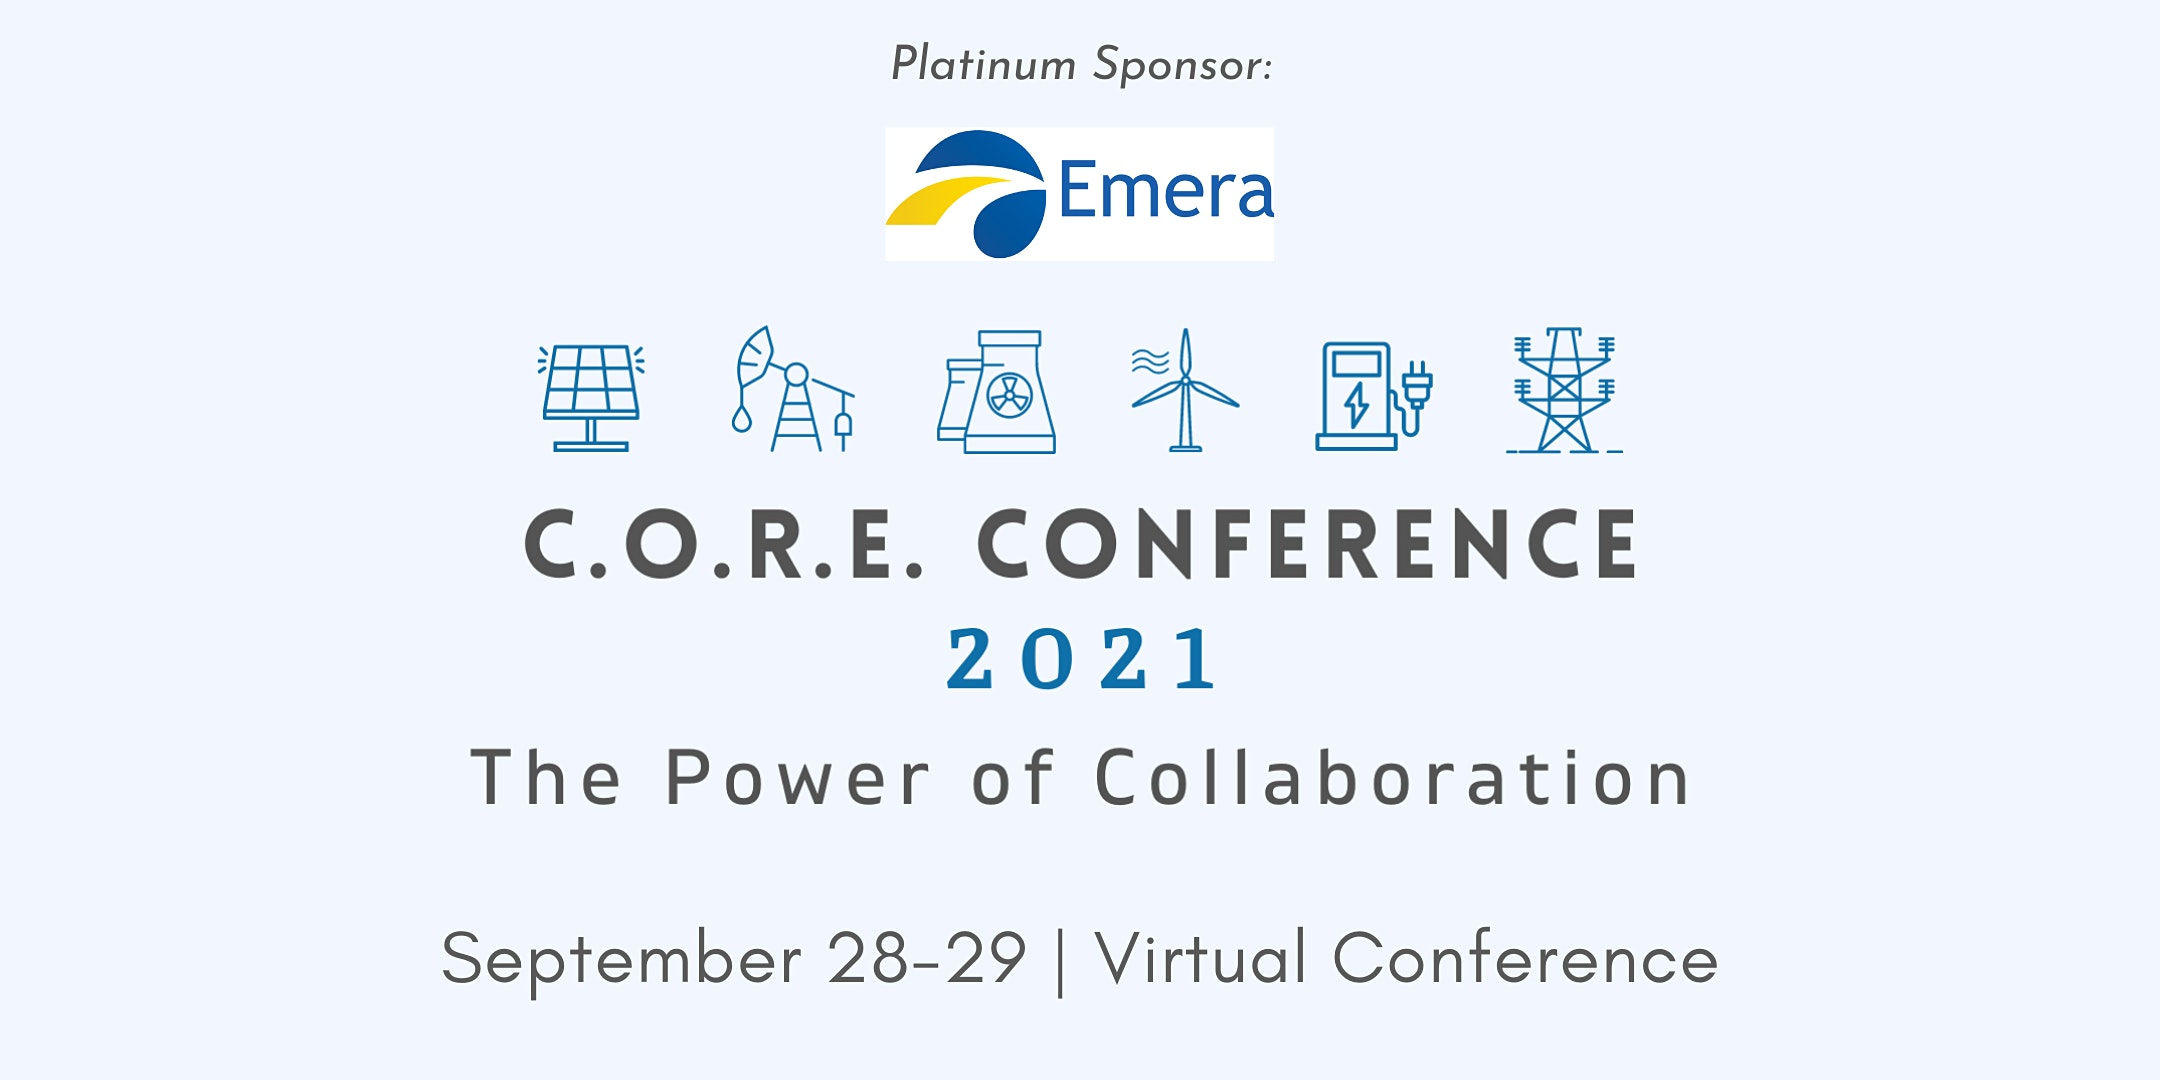 2021 C.O.R.E. Conference: The Power of Collaboration